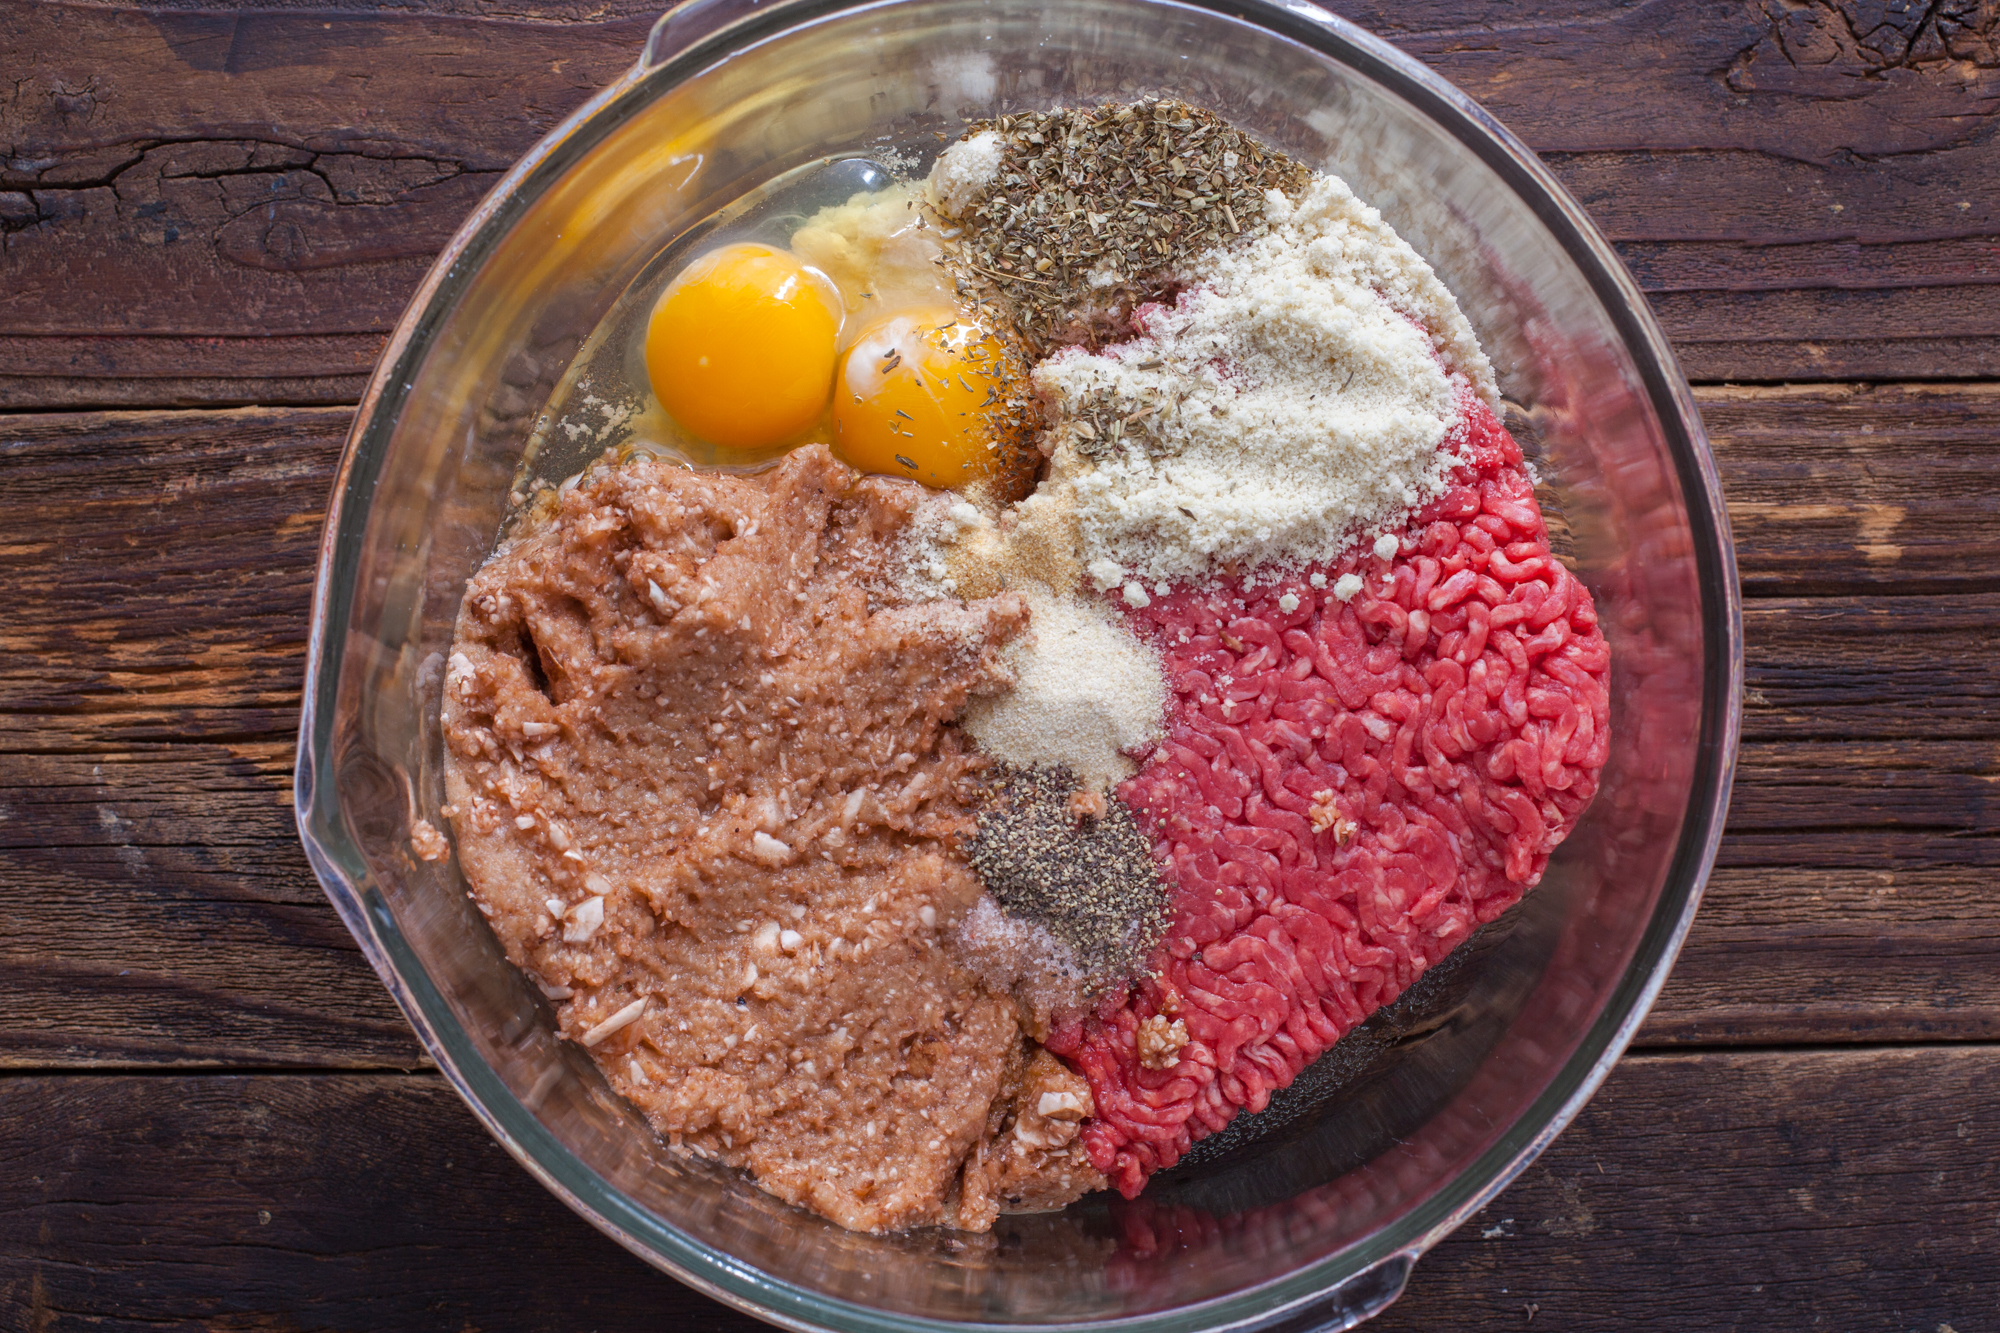 Ingredients for Homemade Meatballs